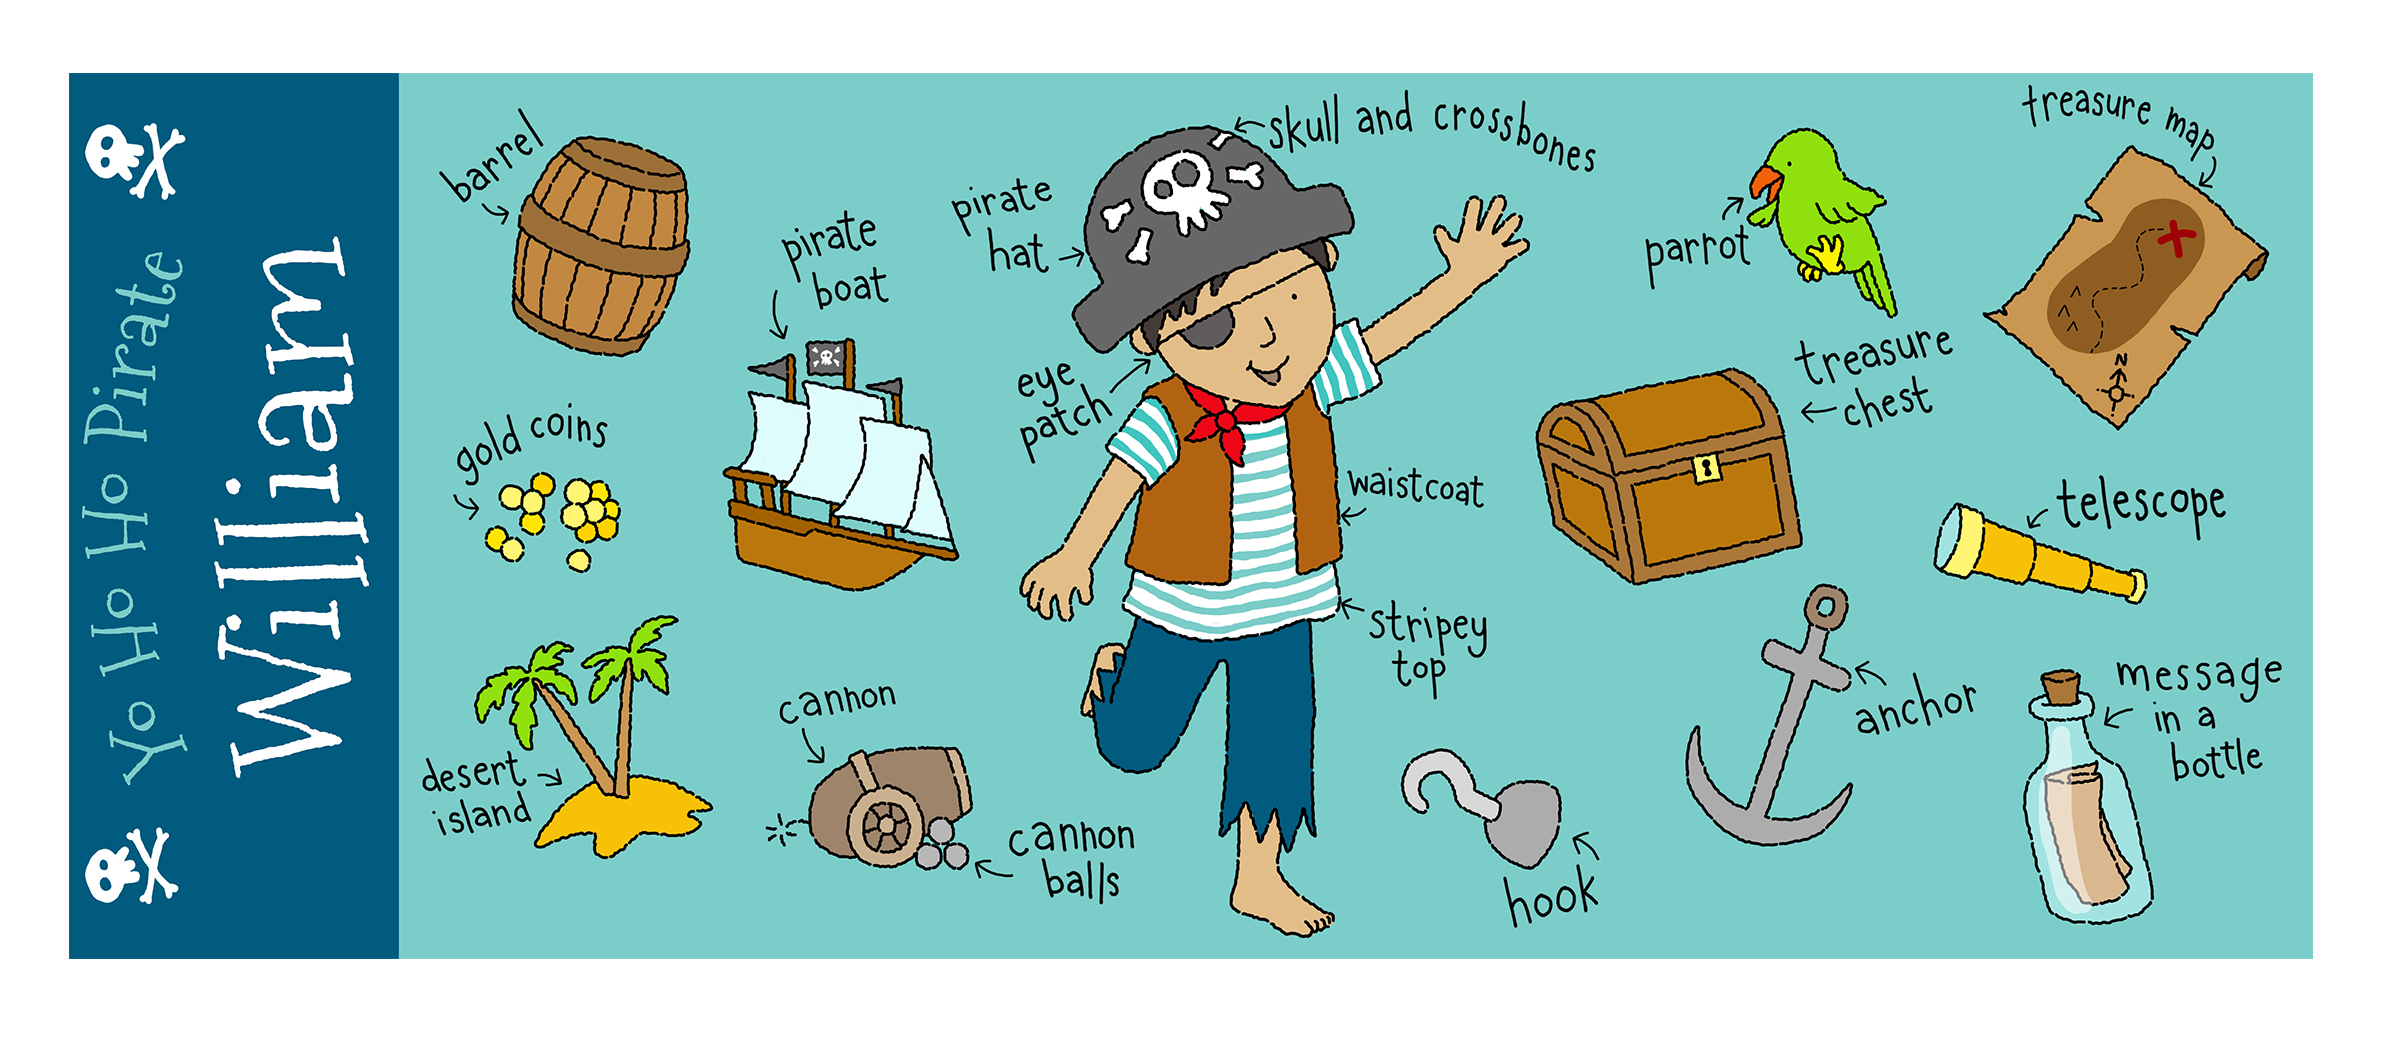 claire keay_pirate items